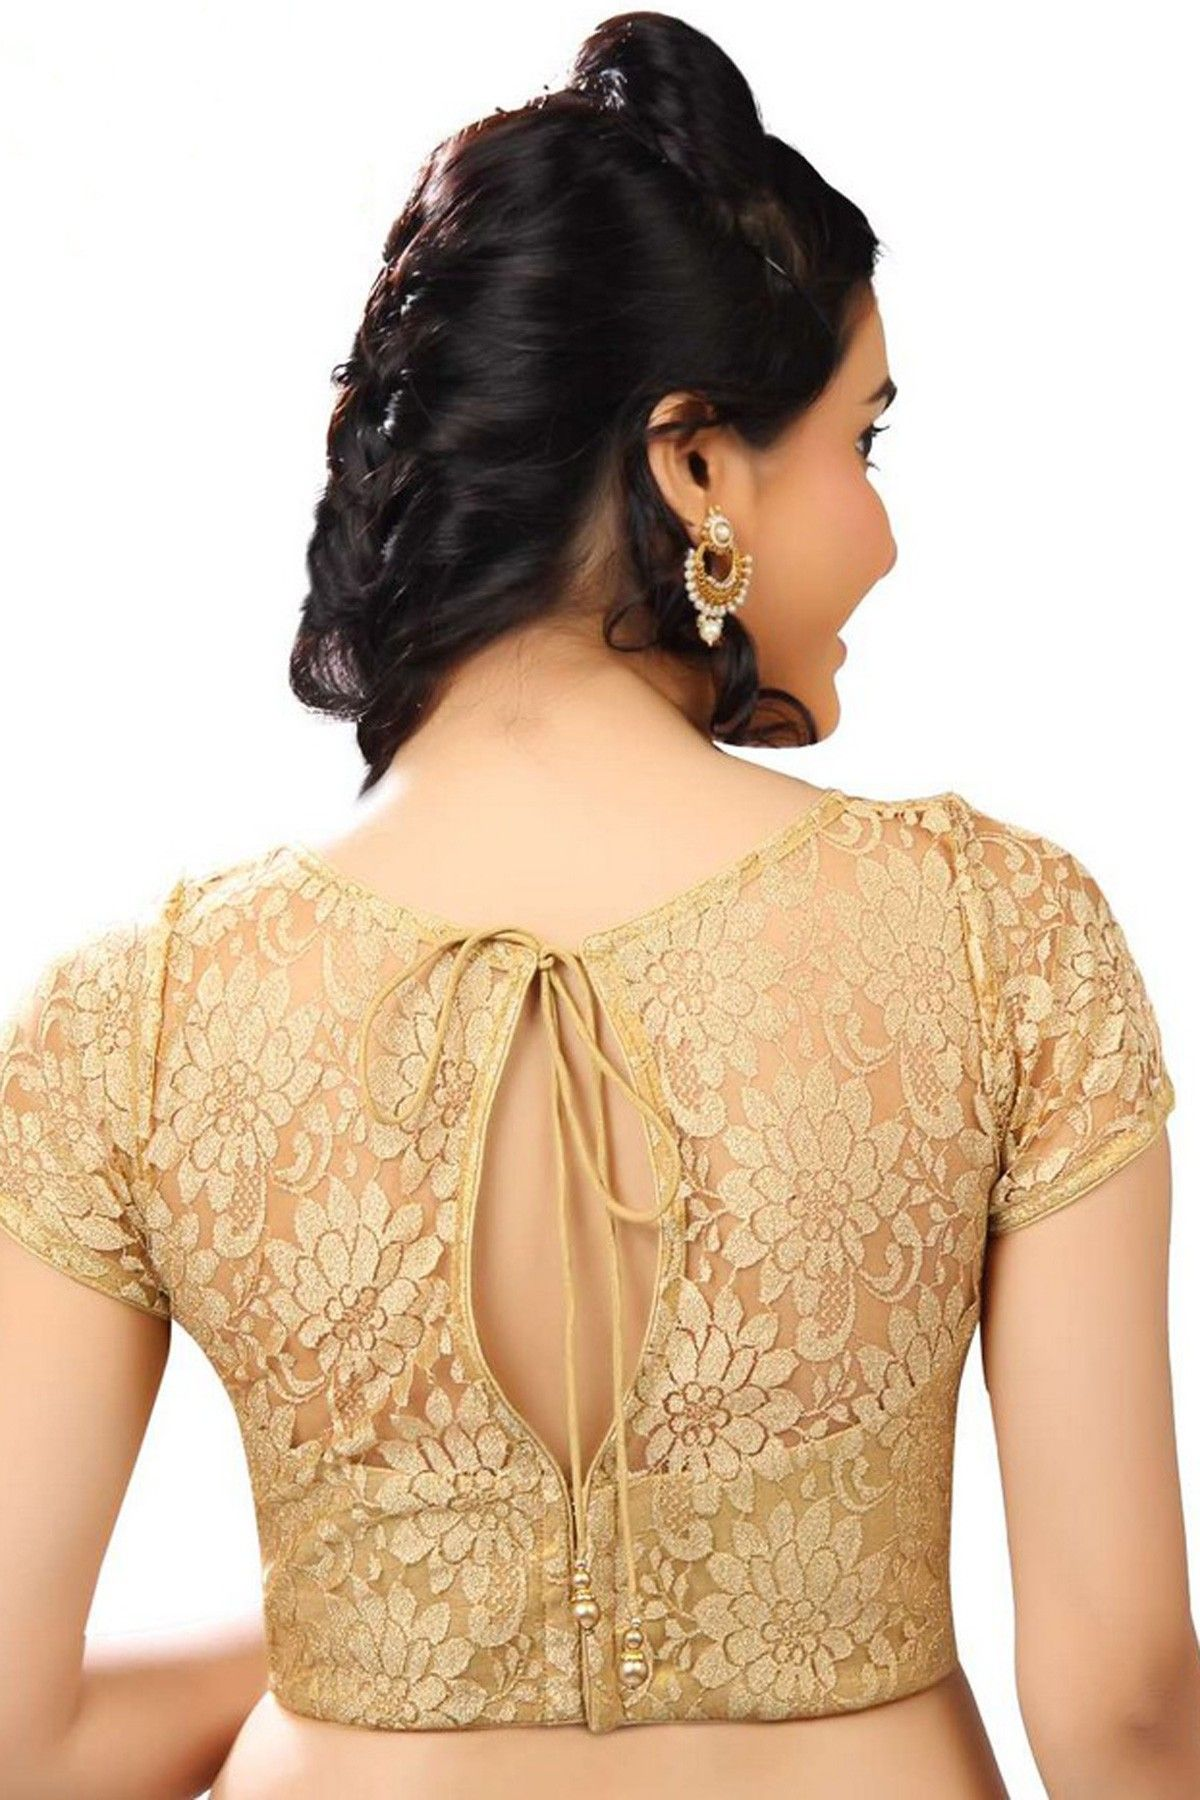 Beige golden brocade blouse blouse designs blouse designs for sarees -  Gold Lace Fabric Designer Blouse With Lovely Jewel Neck With Cap Sleeves